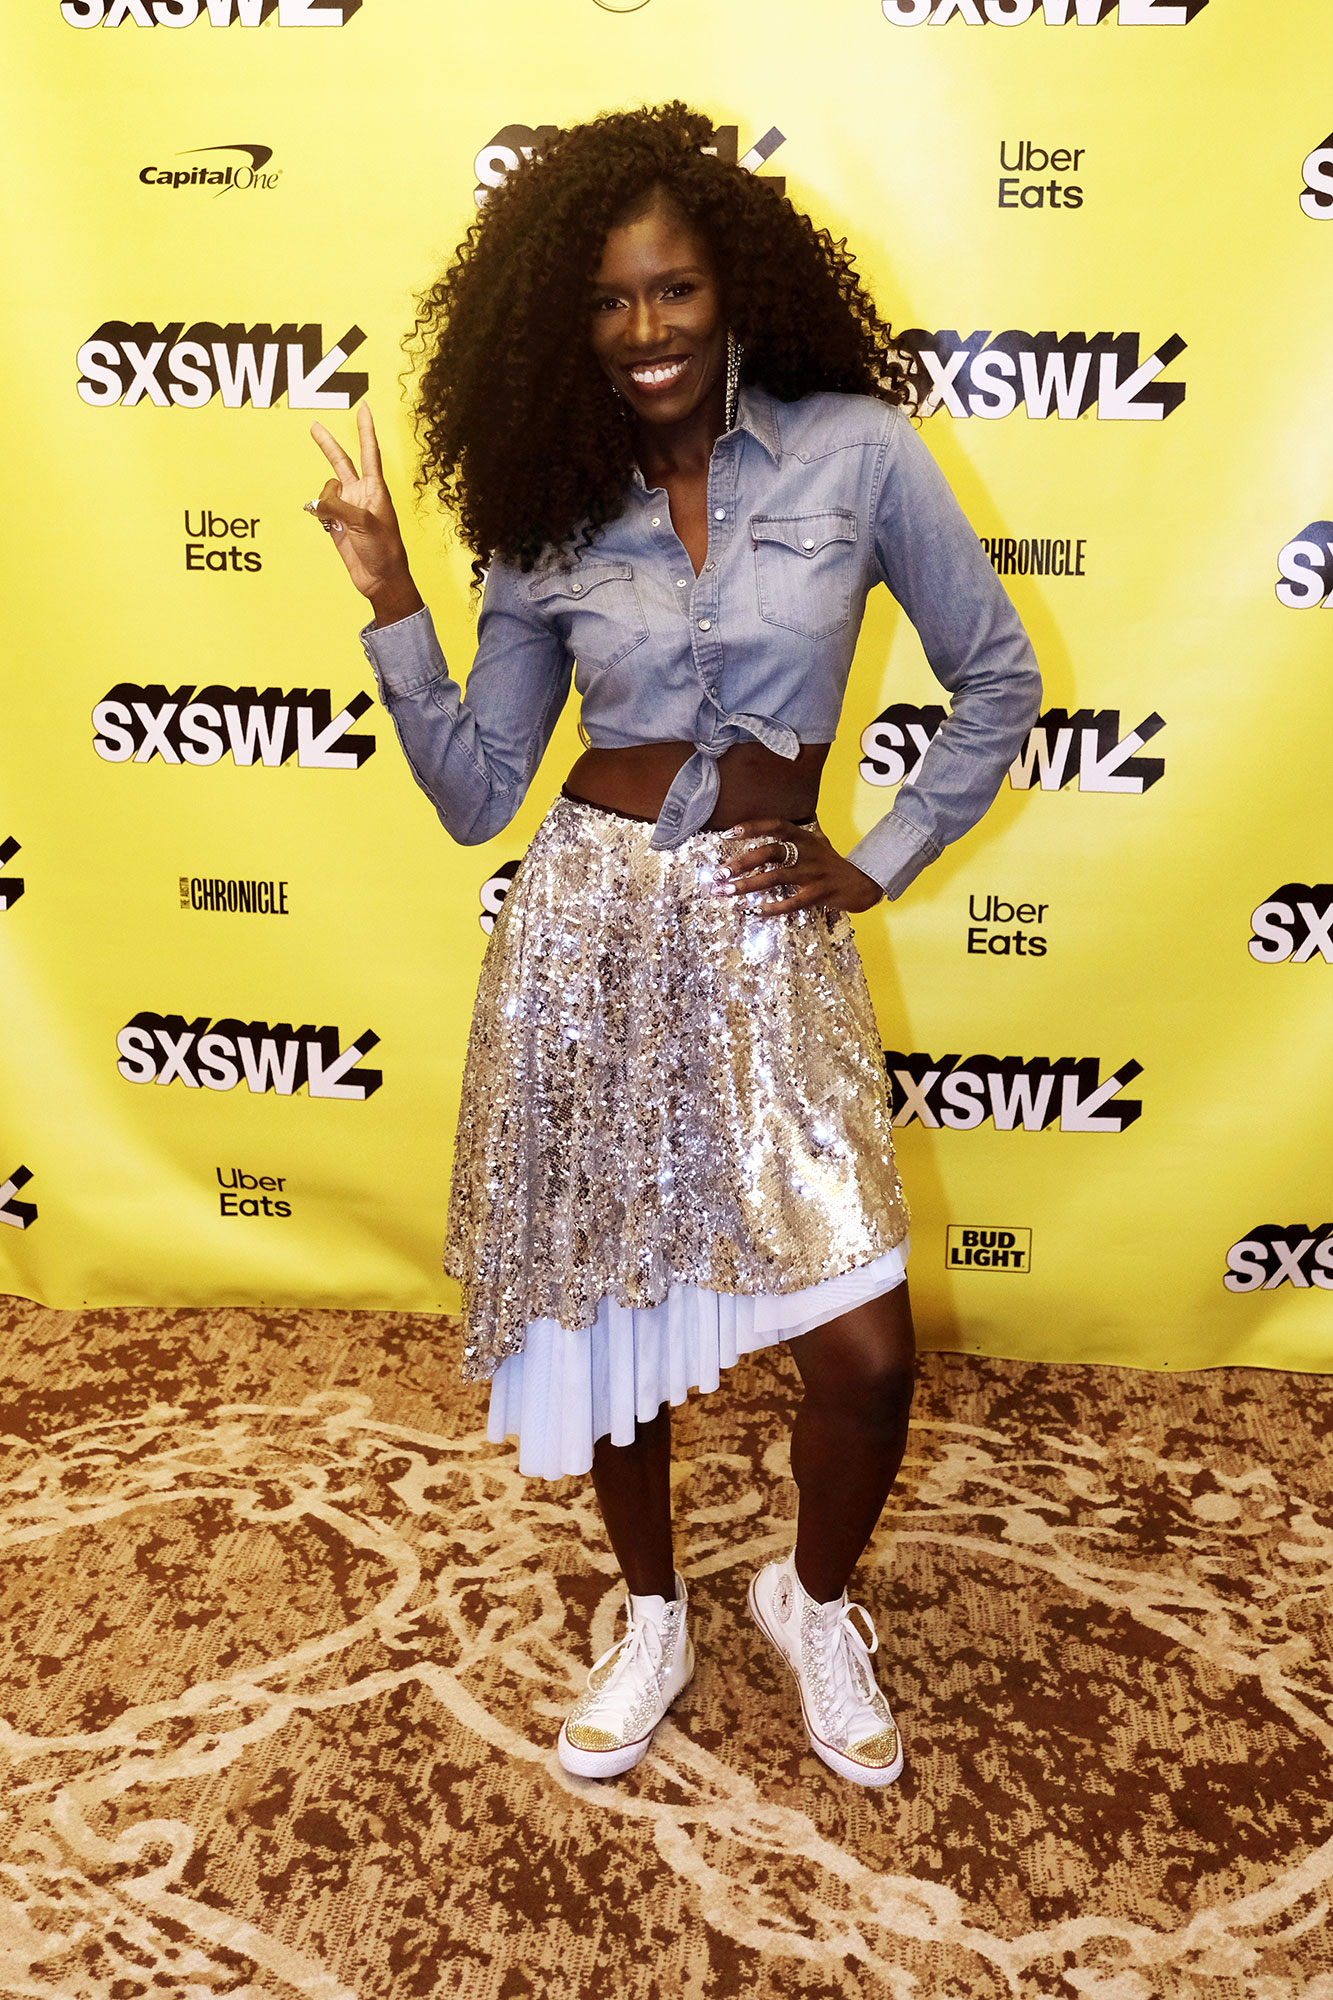 Bozoma Saint John Stars Were All About the Crop Top at Day 6 of SXSW - Showing Us all how to rock a bit of sparkle for day, the boss lady paired an ab-baring chambray shirt and high tops with her sequined skirt on Wednesday, March 13.